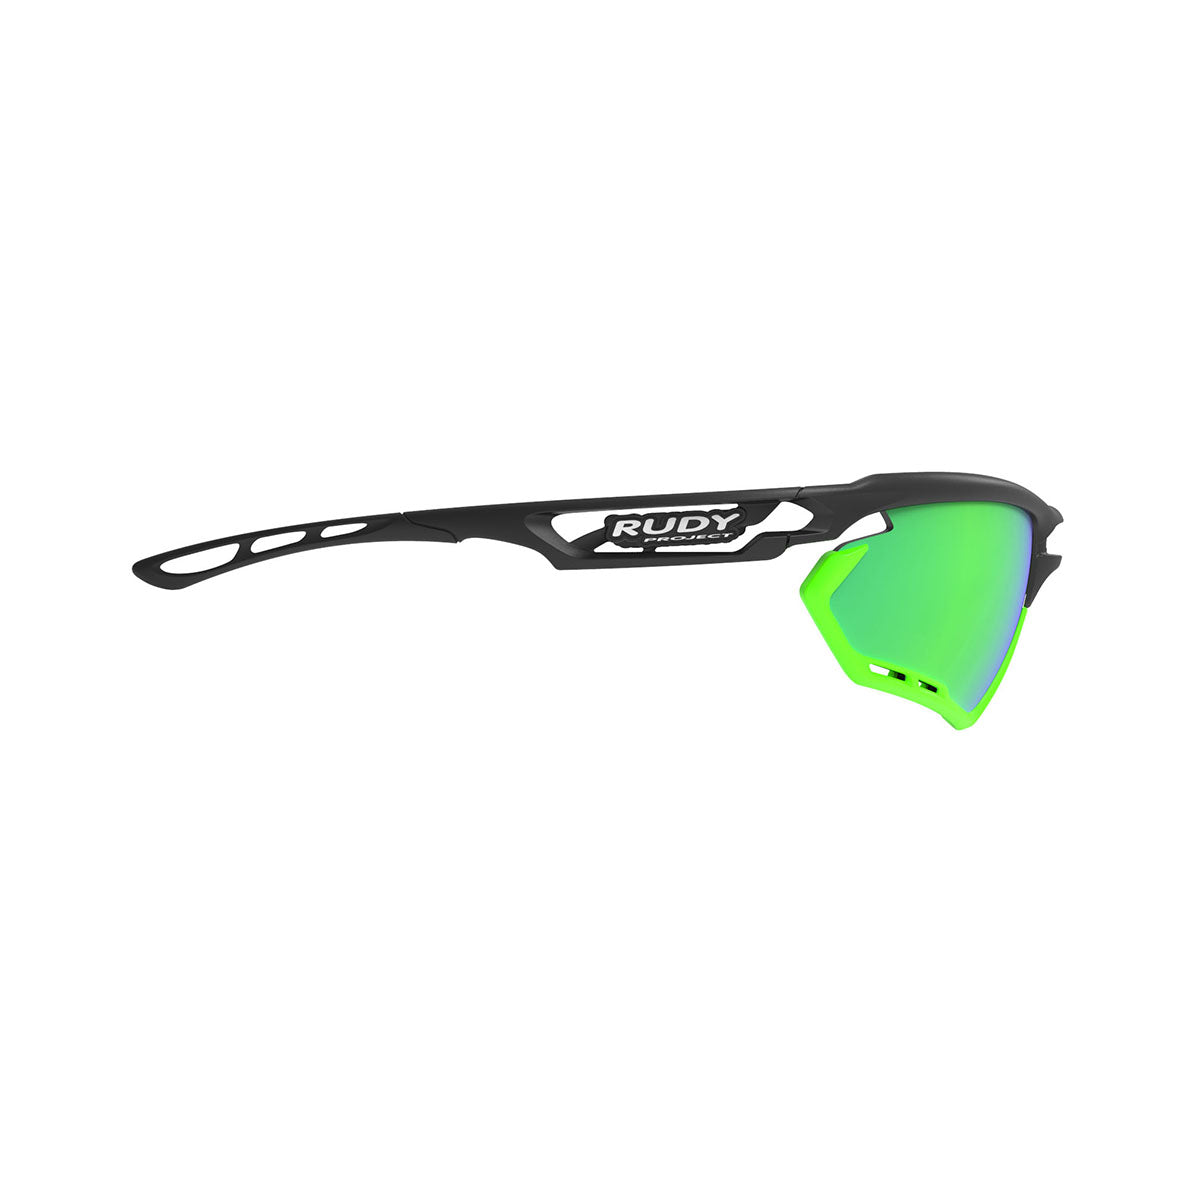 Rudy Project Fotonyk Matte Black Frame With Lime Bumpers and Polar 3FX HDR Multilaser Green Lenses